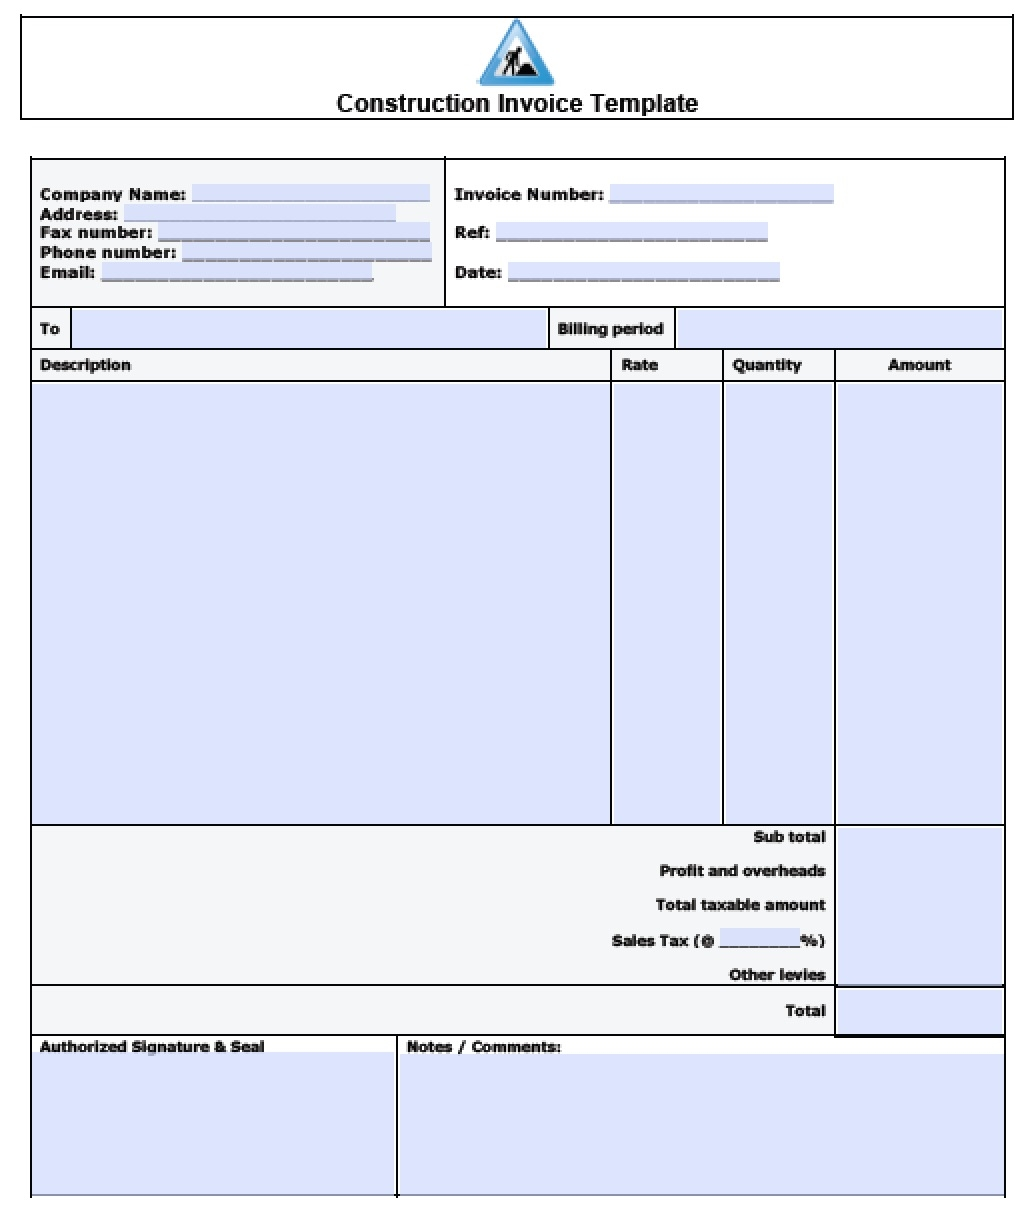 free construction invoice template excel pdf word doc invoice template creator